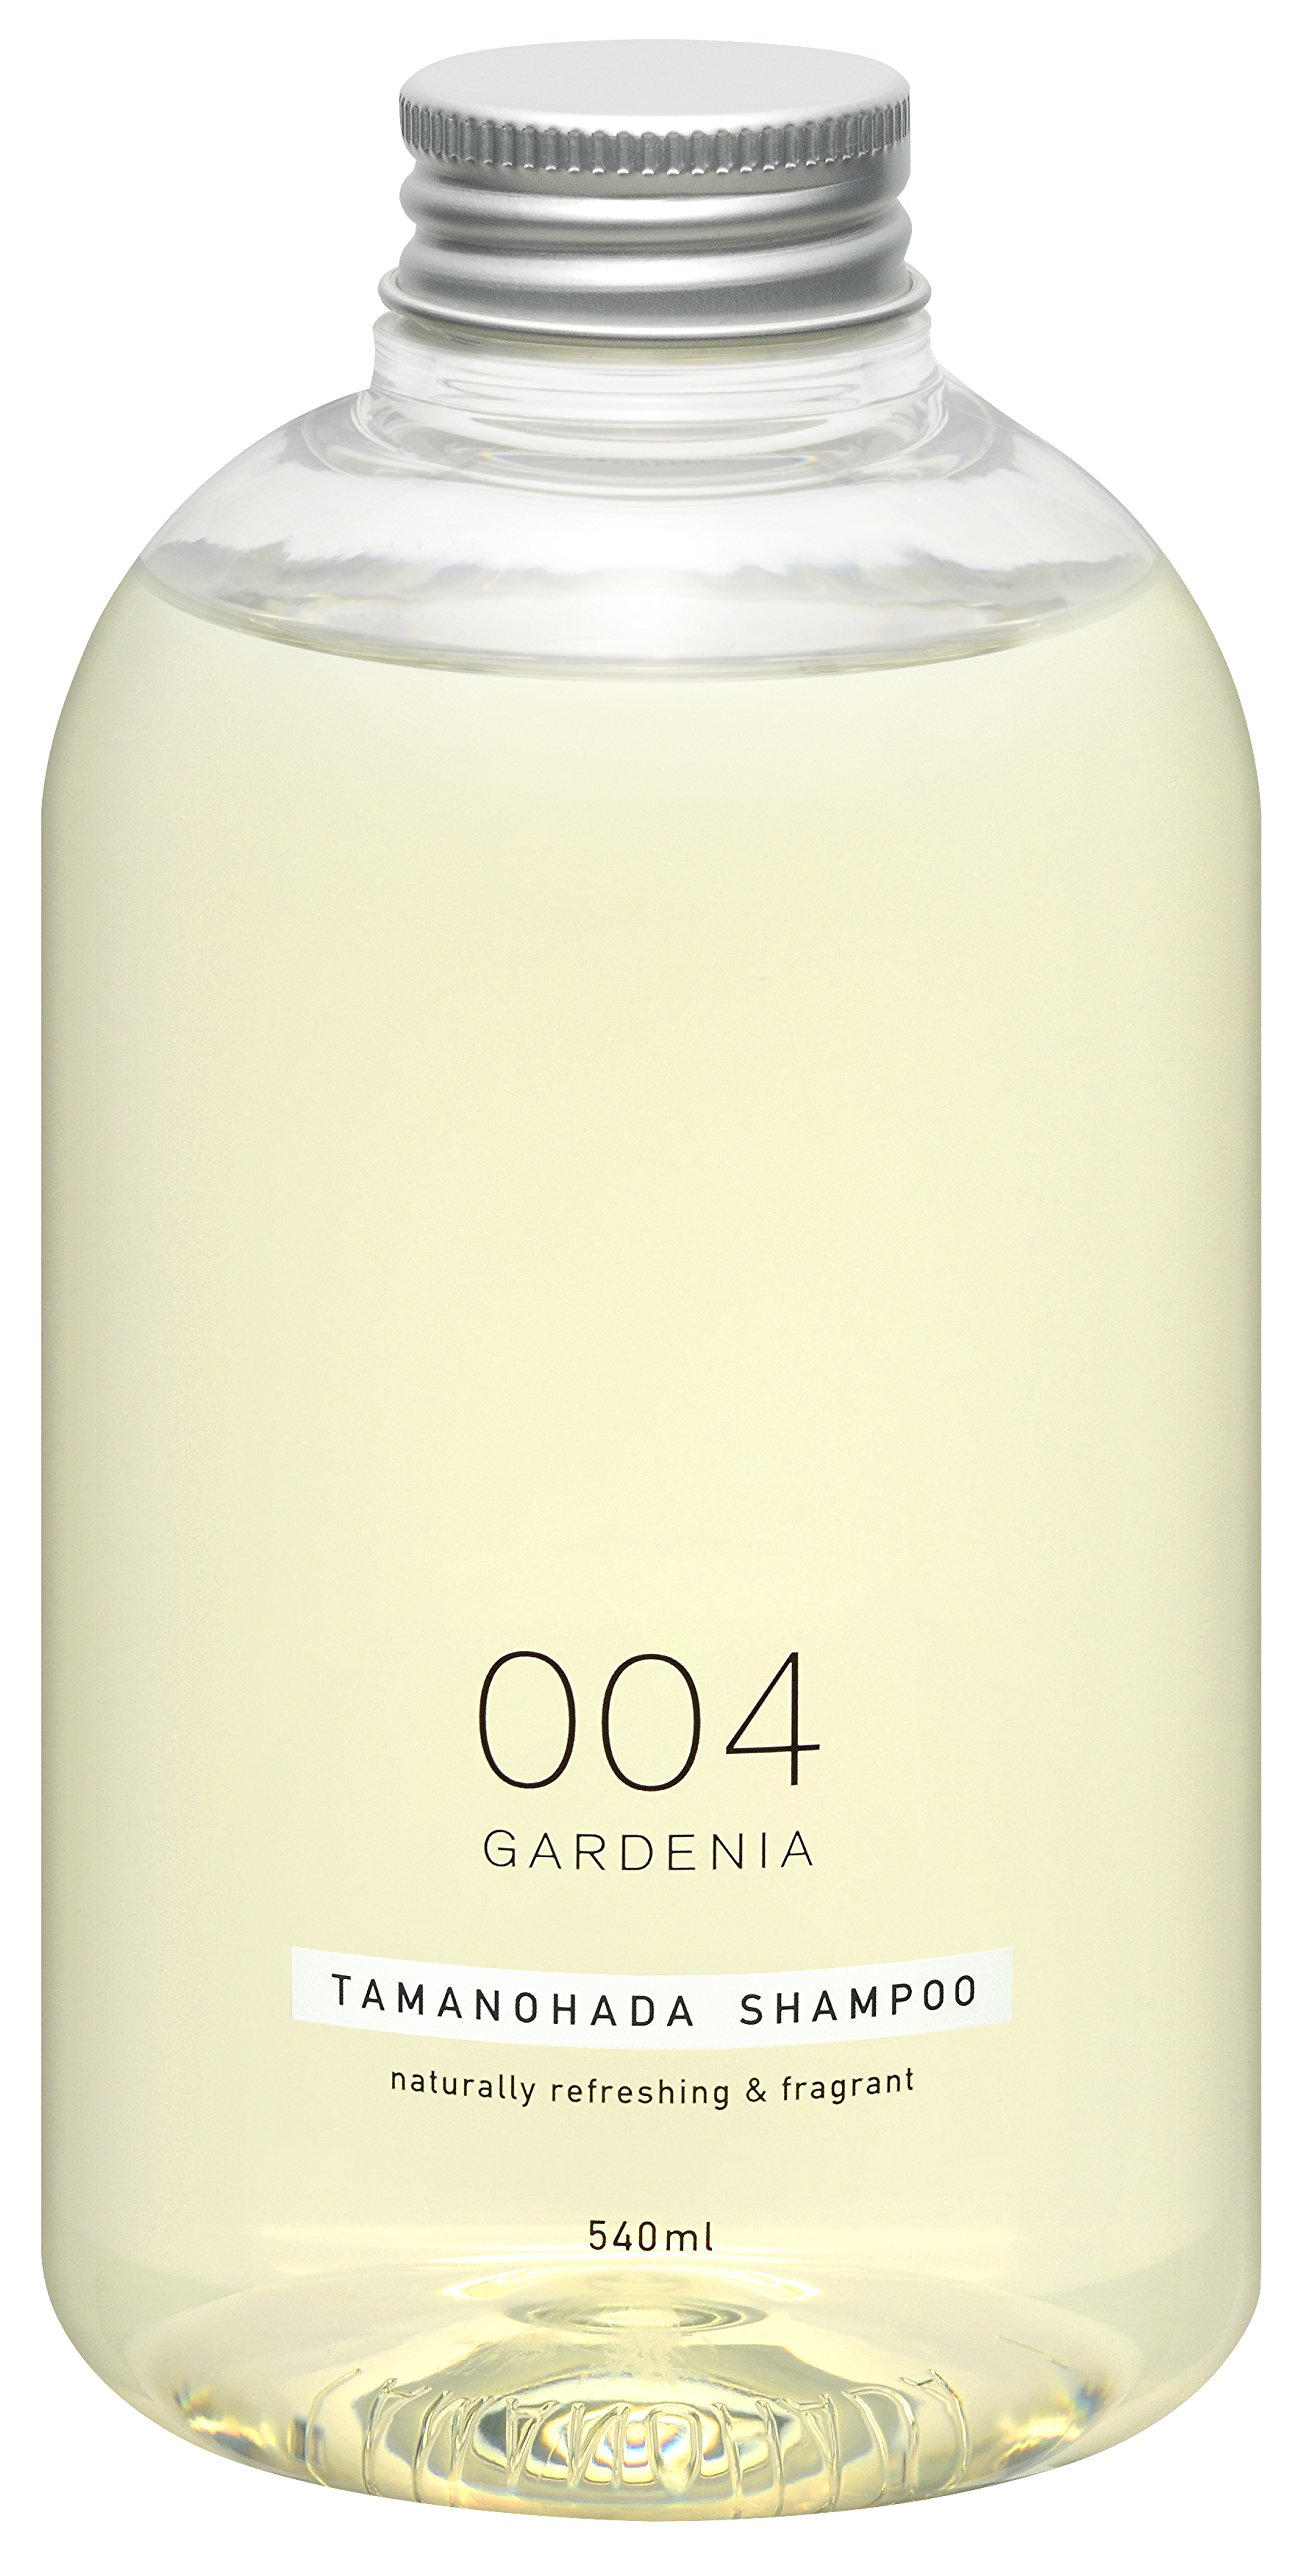 TAMANOHADA Naturally Refreshing Fragrant Gardenia